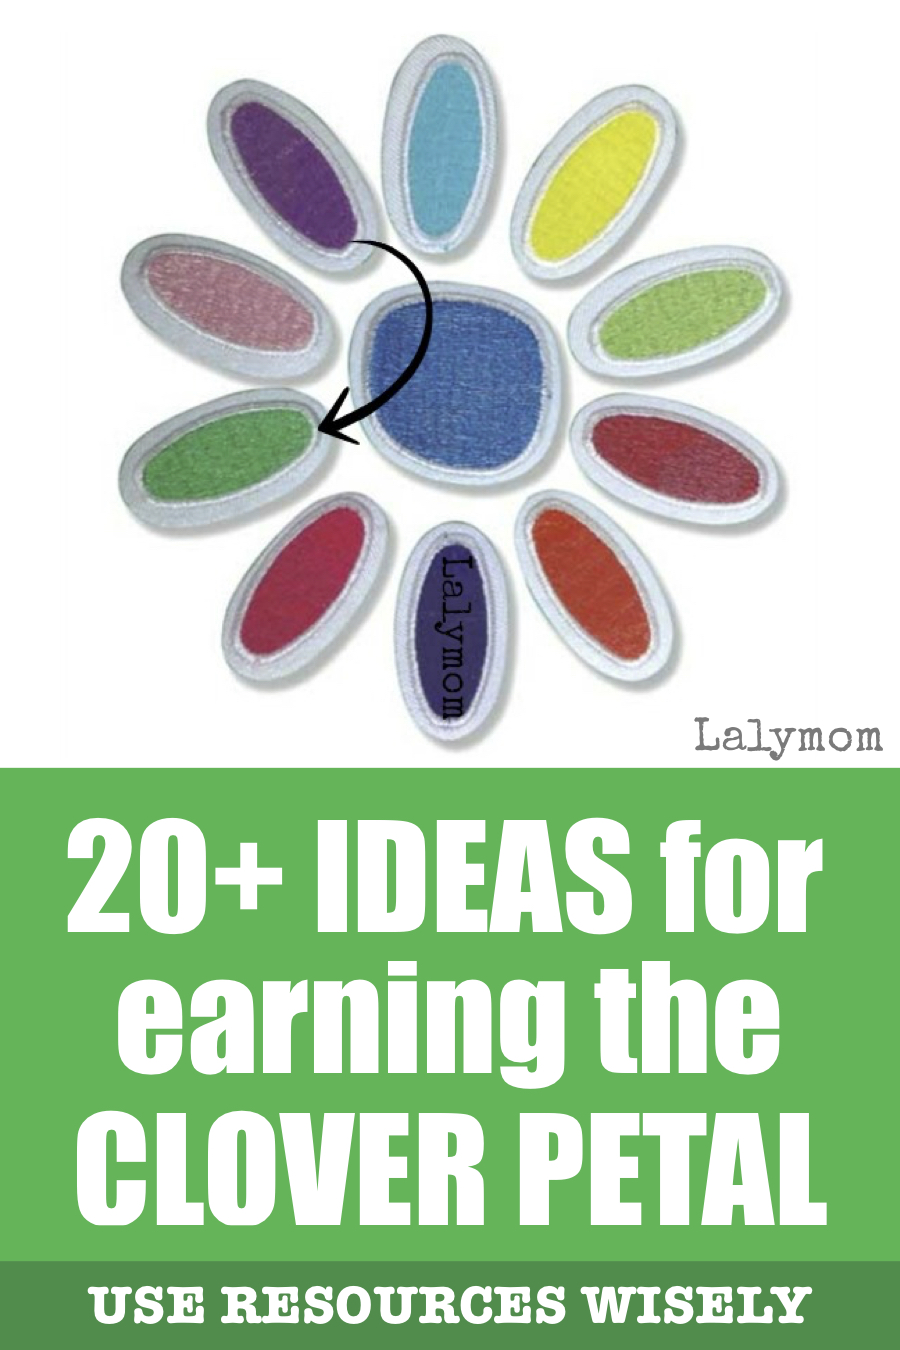 20+ Ideas for Earning the Clover Petal for Daisy Girl Scouts